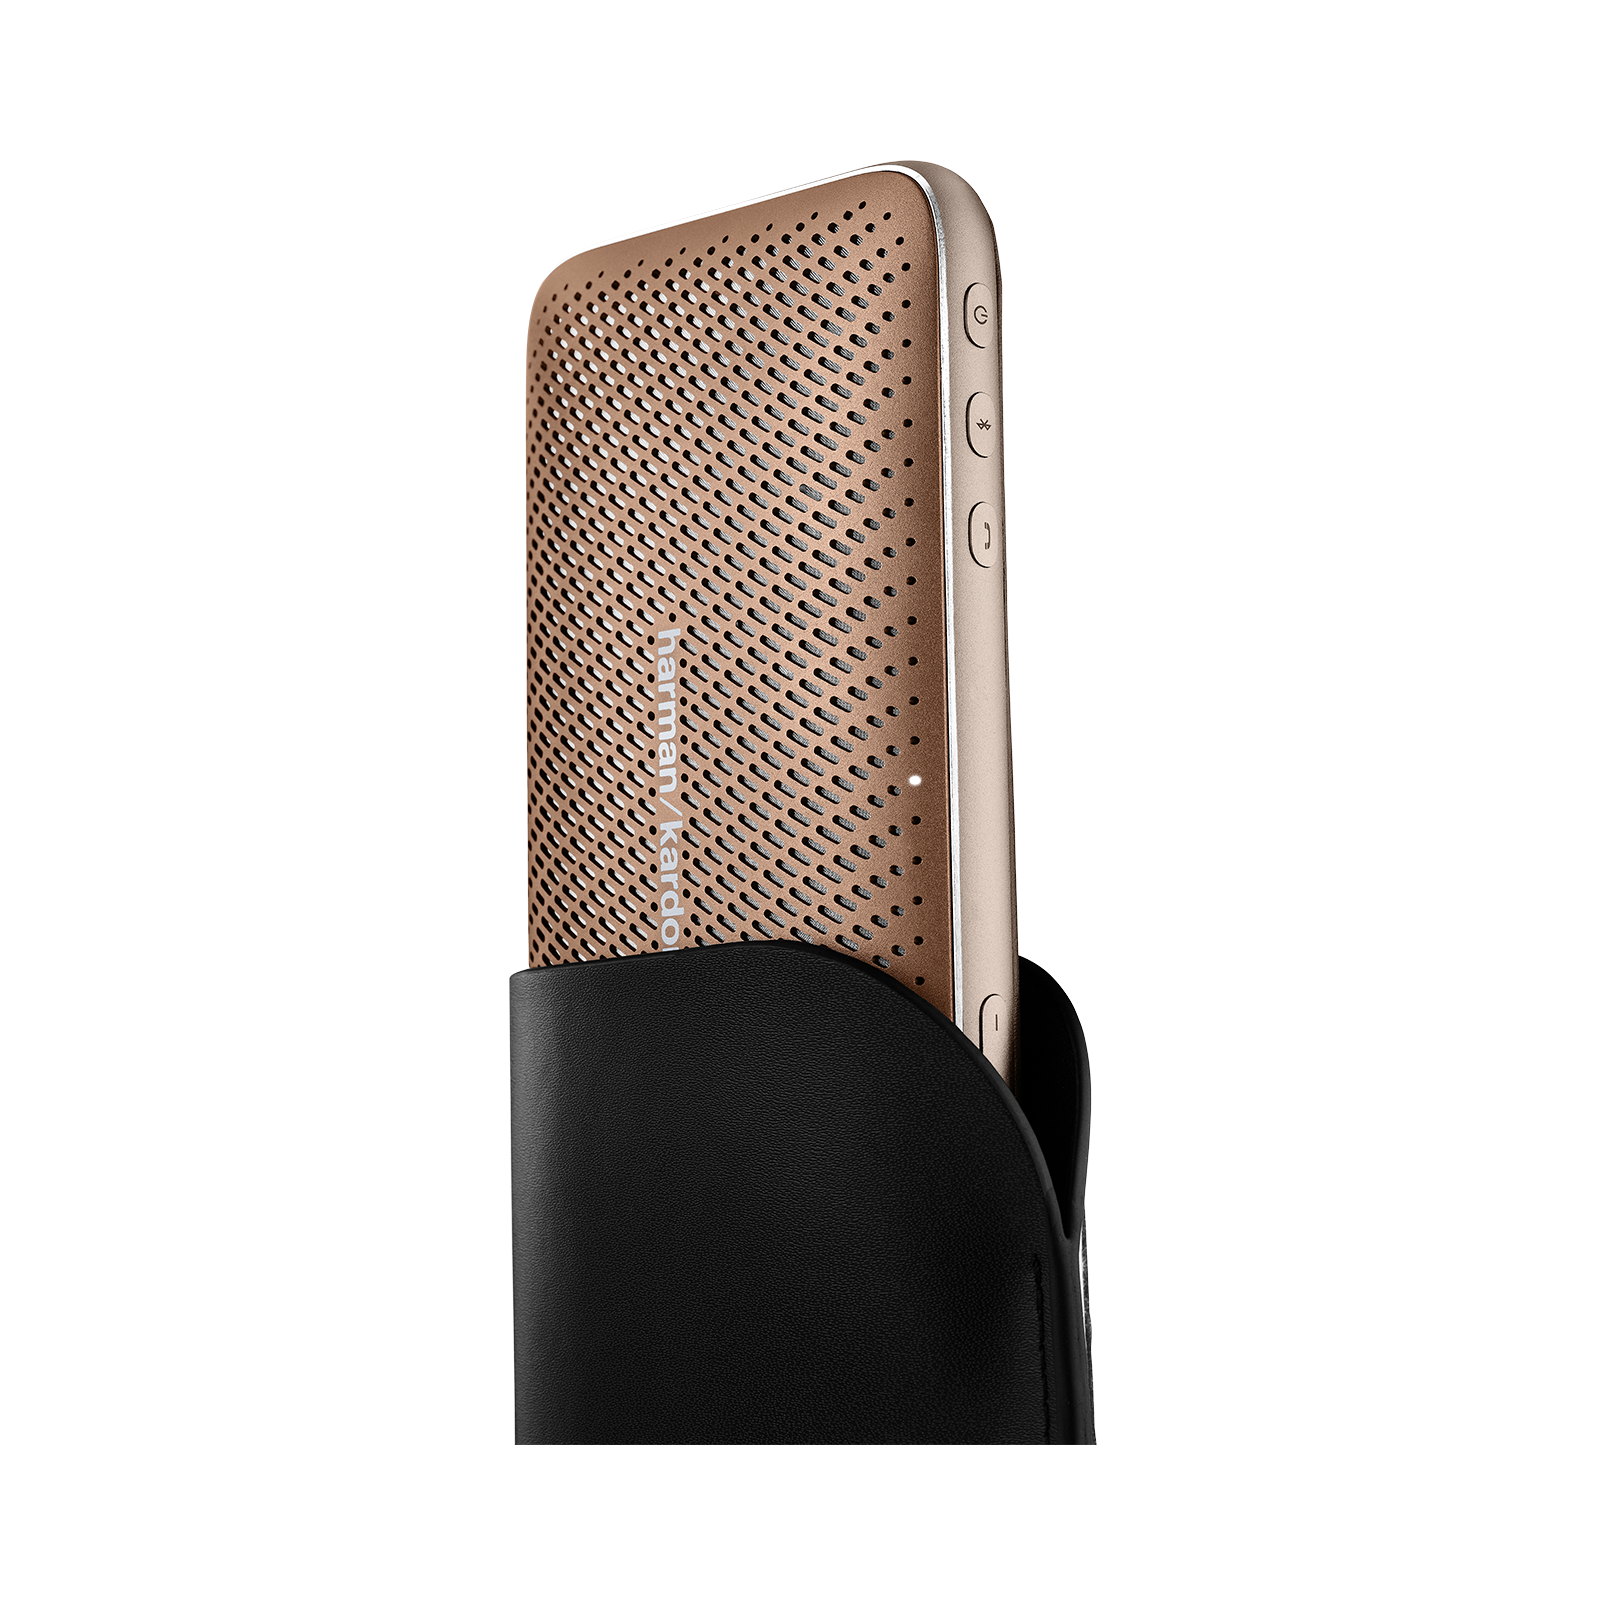 Harman Kardon Esquire Mini 2 - Brown - Ultra-slim and portable premium Bluetooth Speaker - Detailshot 1